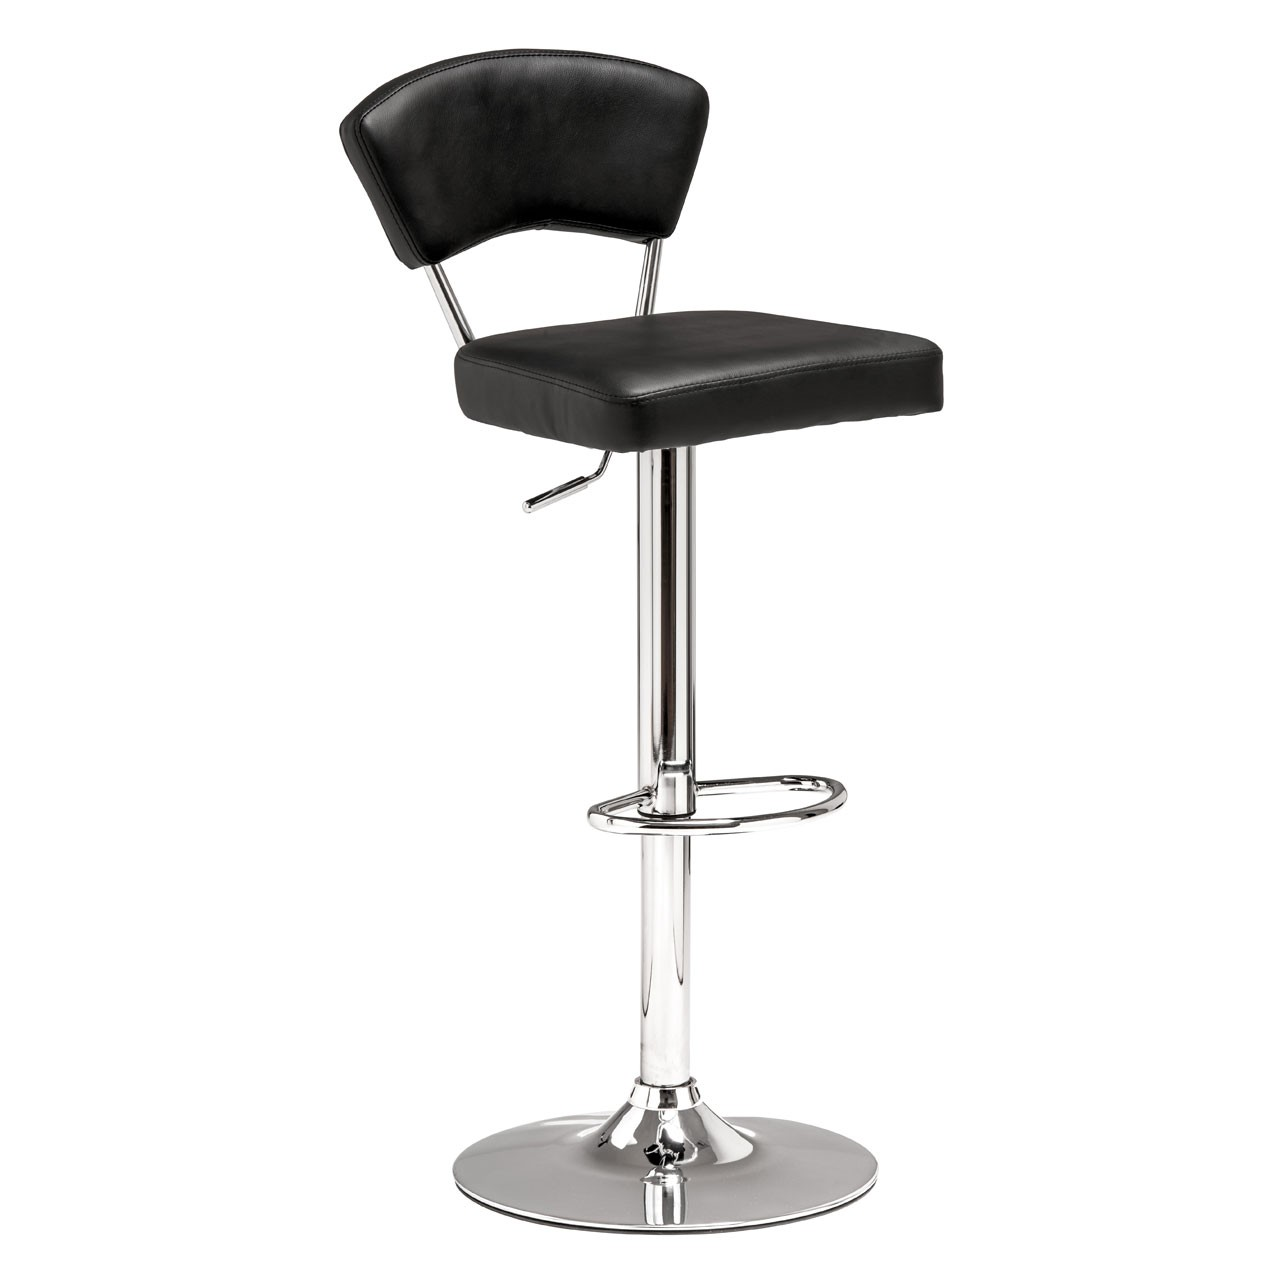 2 x Anya Bar Chair Leather Effect Chrome Finish Base Black